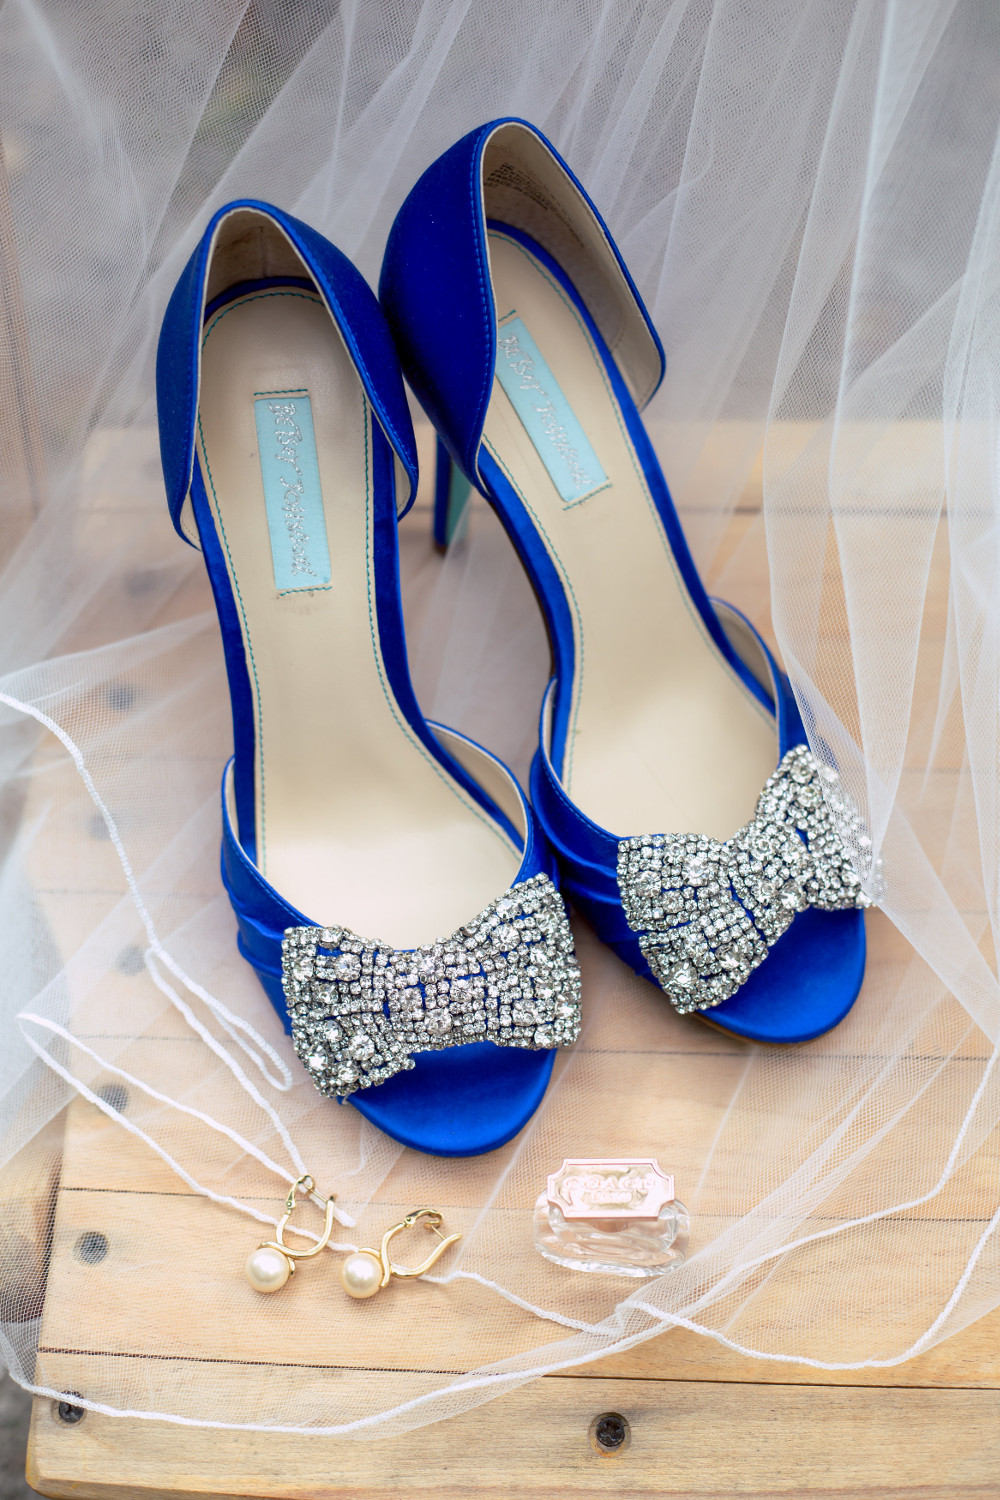 blue wedding shoes.jpg